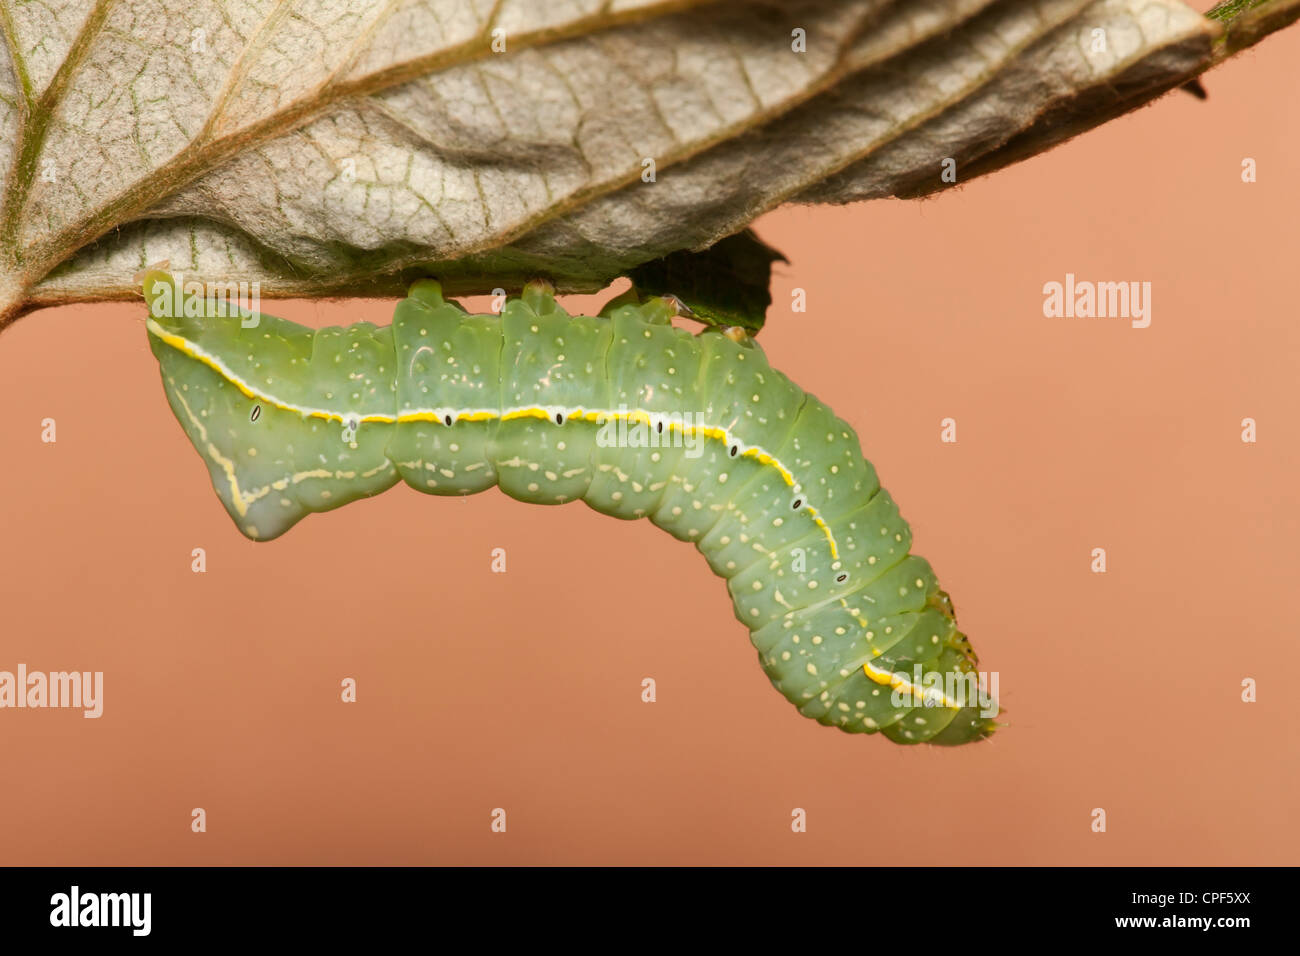 A Copper Underwing Moth (Amphipyra pyramidoides) caterpillar (larva) feeding on a wild grape leaf - Stock Image